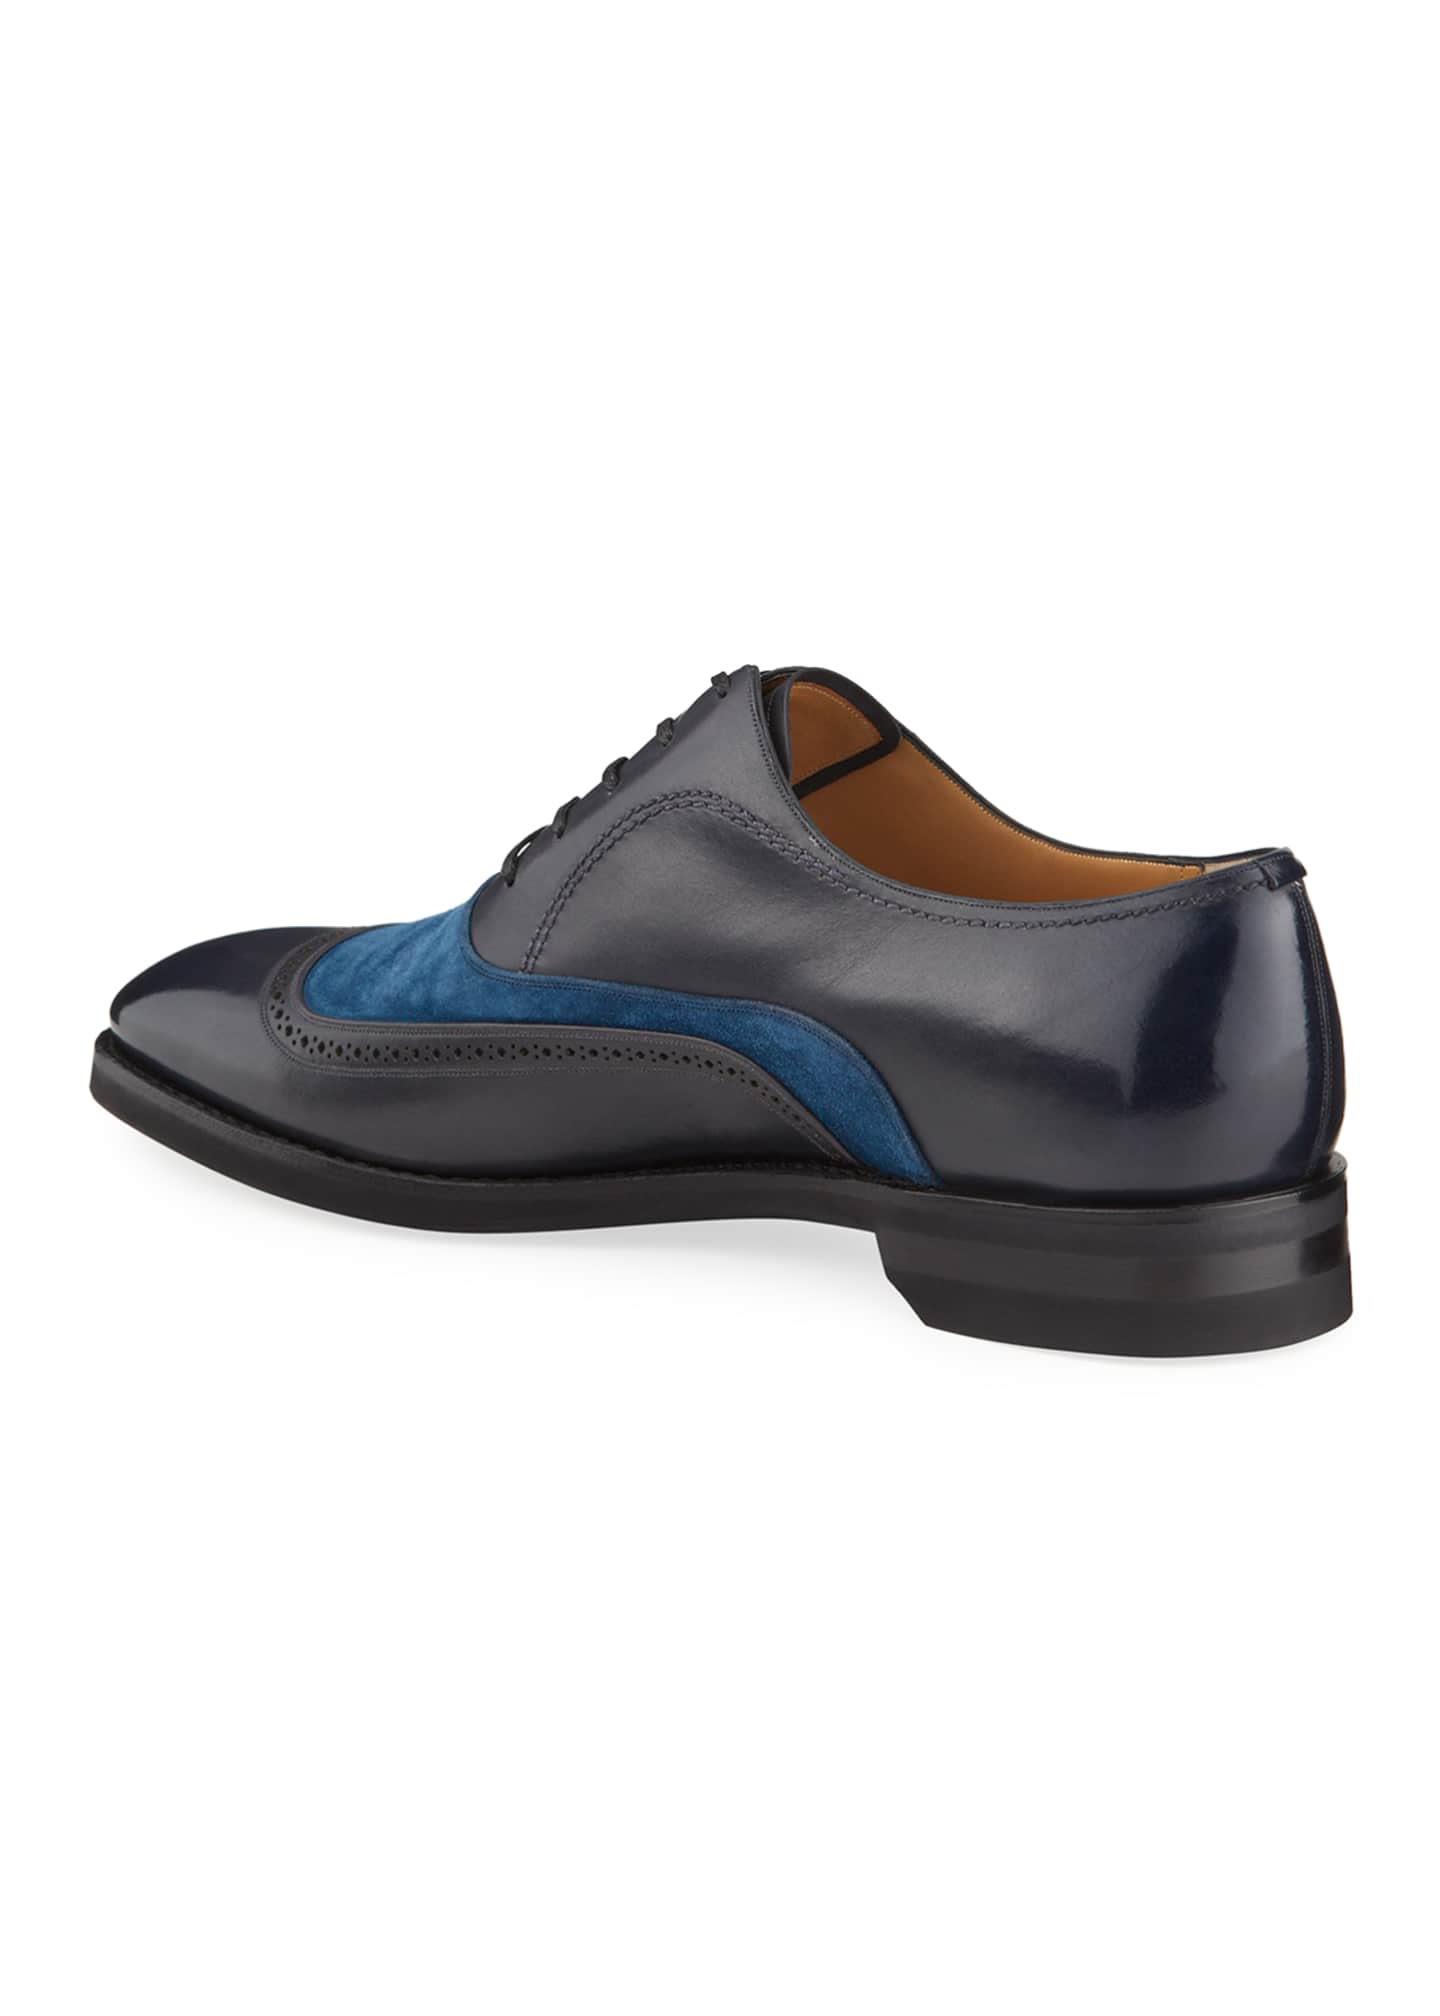 Image 3 of 4: Men's Contrast-Suede Leather Dress Shoes